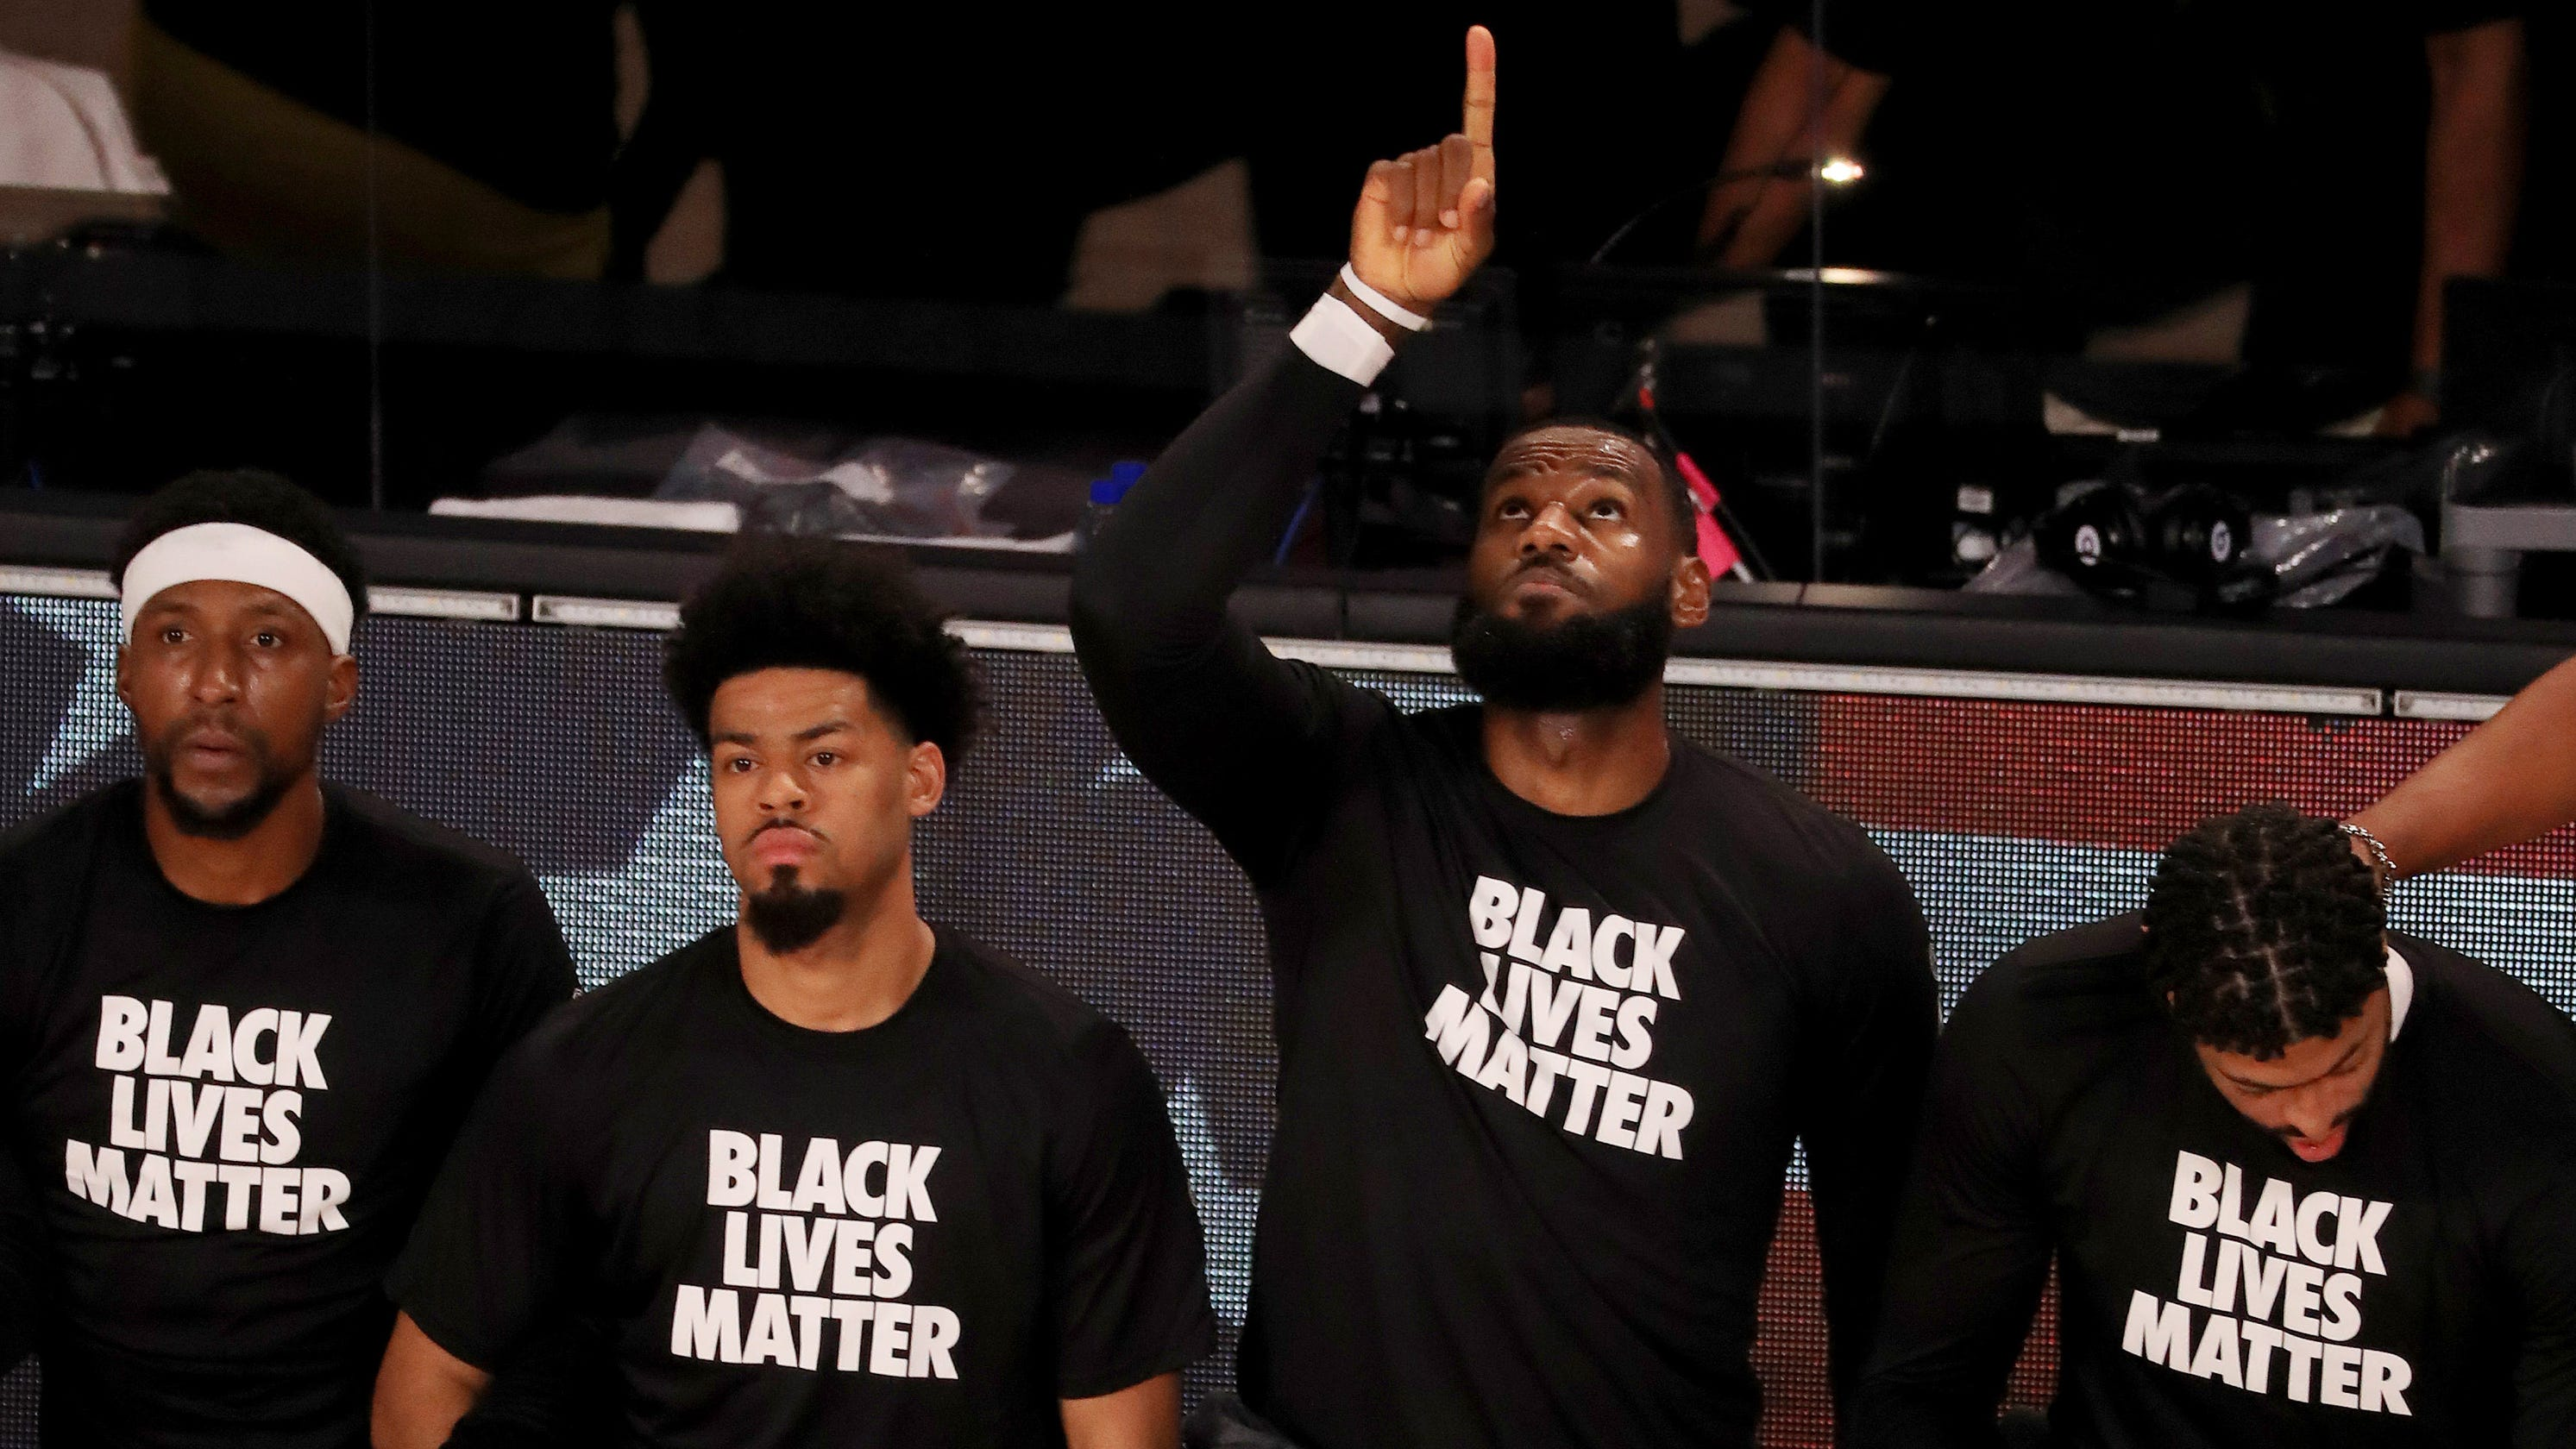 NBA players kneeling during national anthem doesn't feel defiant